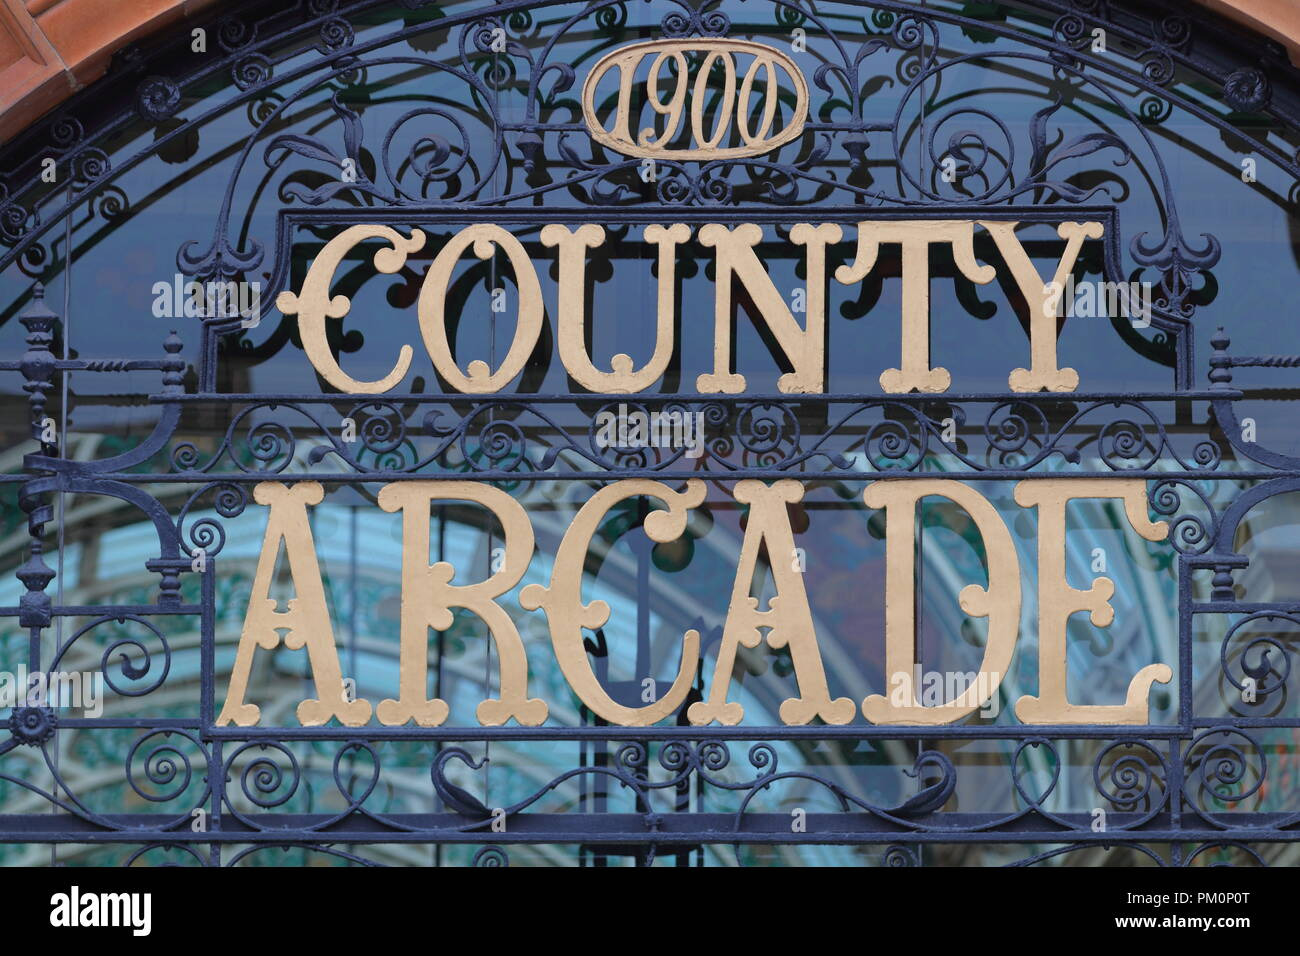 The exterior of Leeds County Arcade - Stock Image